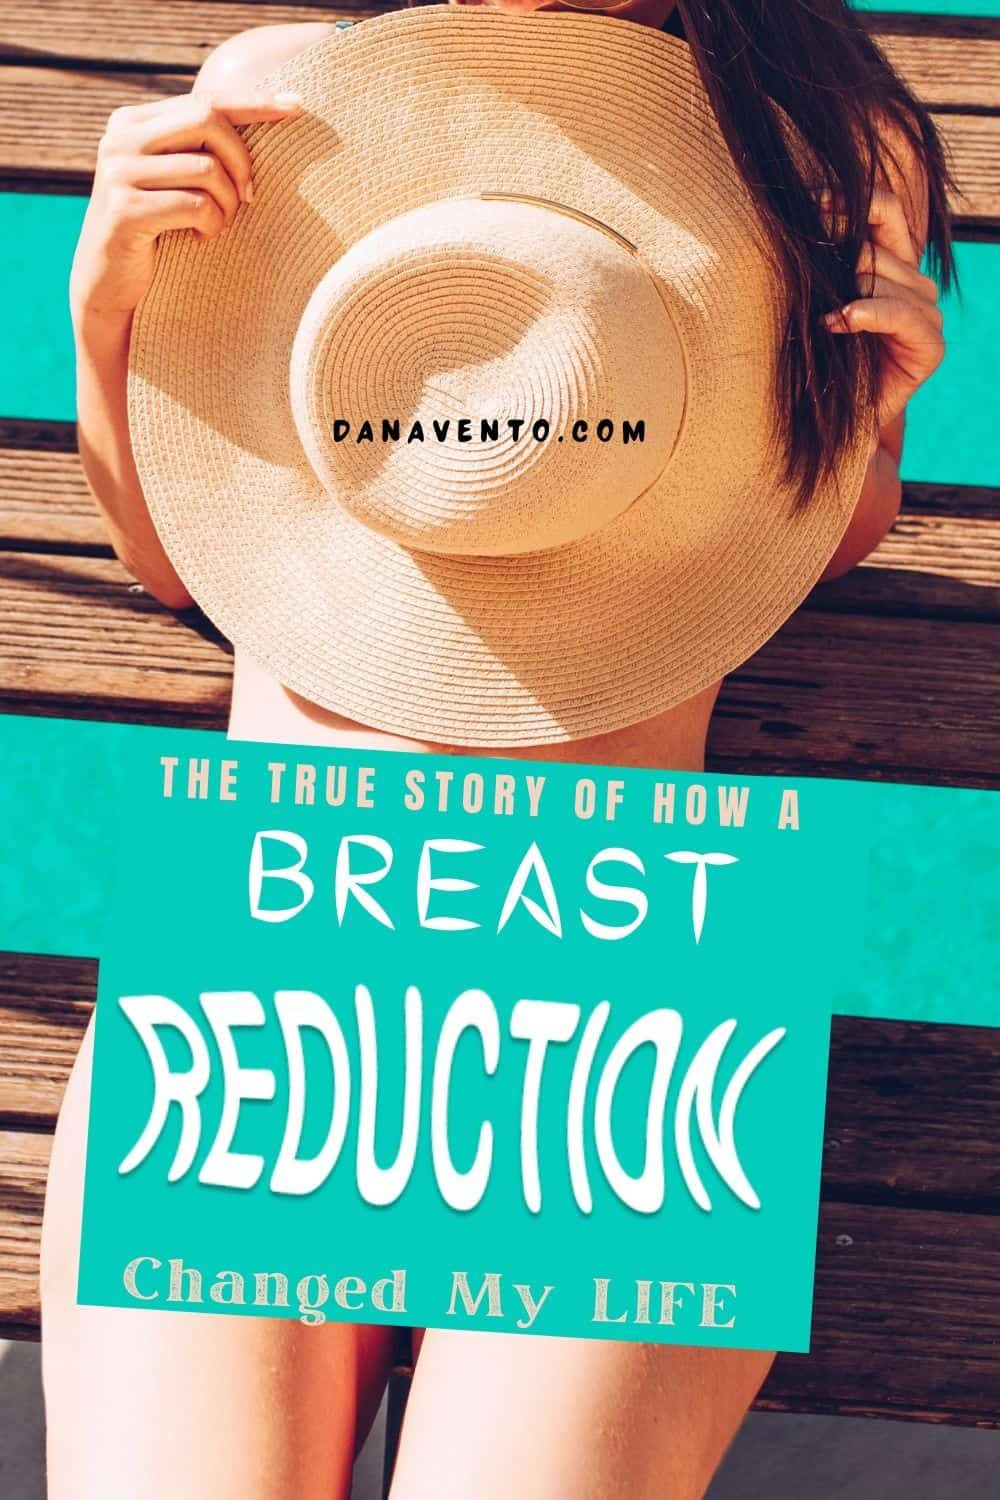 Sitting with a beach hat covering breasts a breast reduction changed my life